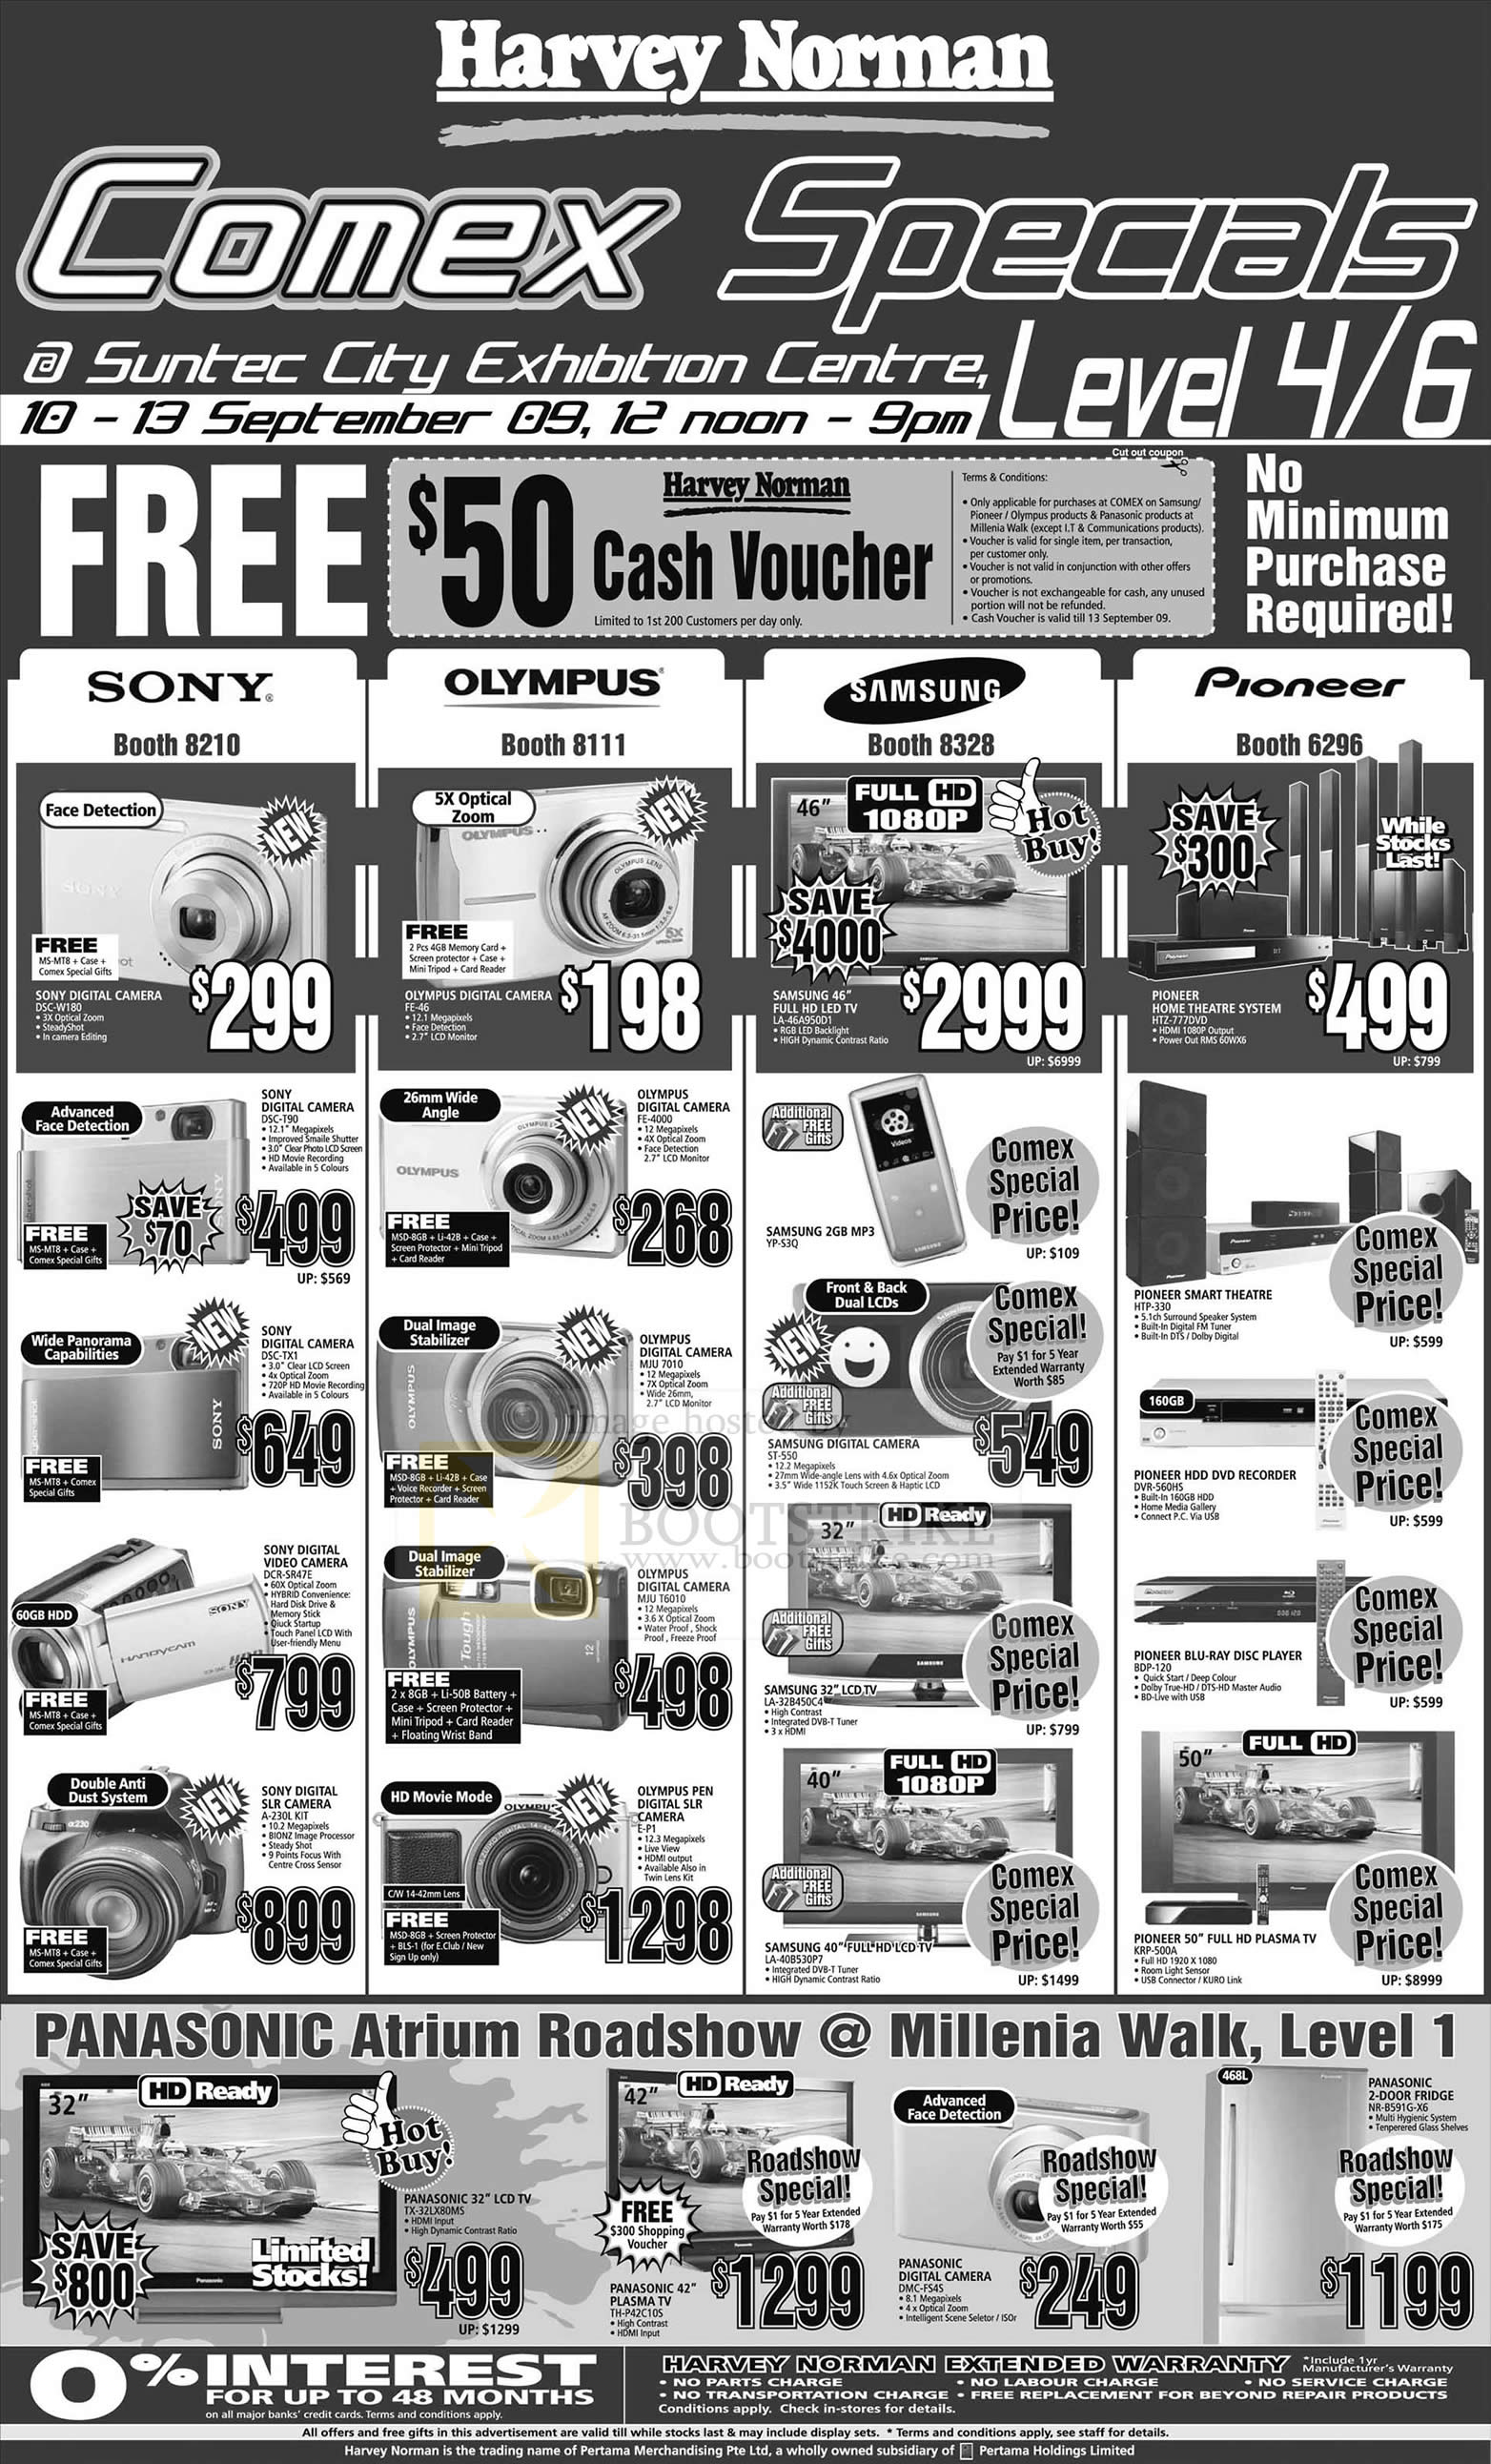 Comex 2009 price list image brochure of Harvey Norman Panasonic Sony Olympus Samsung Pioneer Camera TV